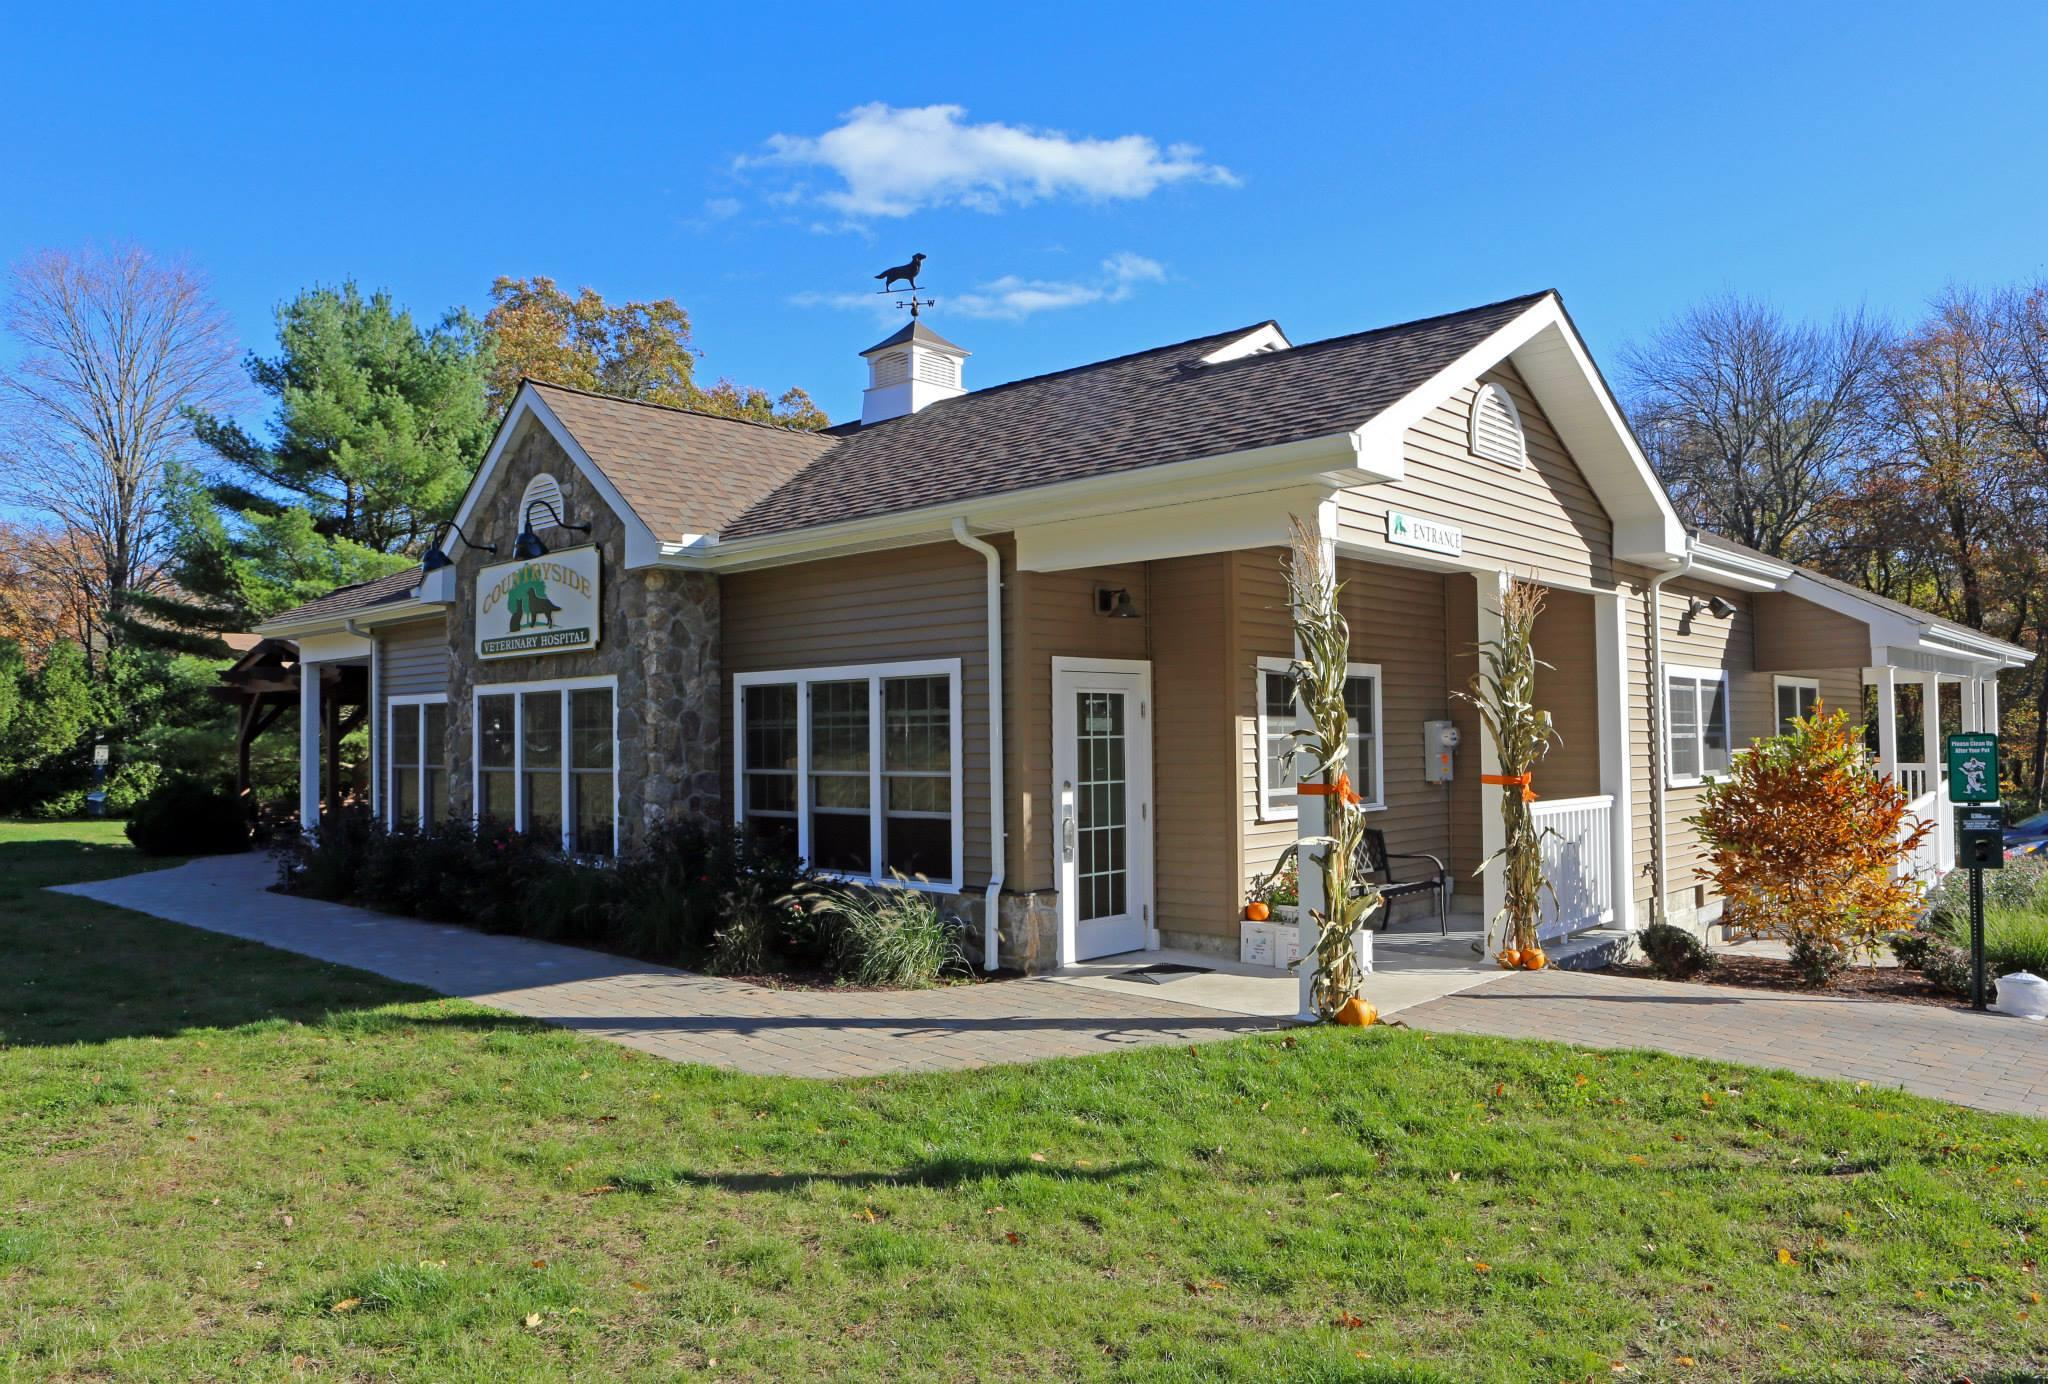 Countryside Veterinary Hospital Shelton Connecticut Insider Pages